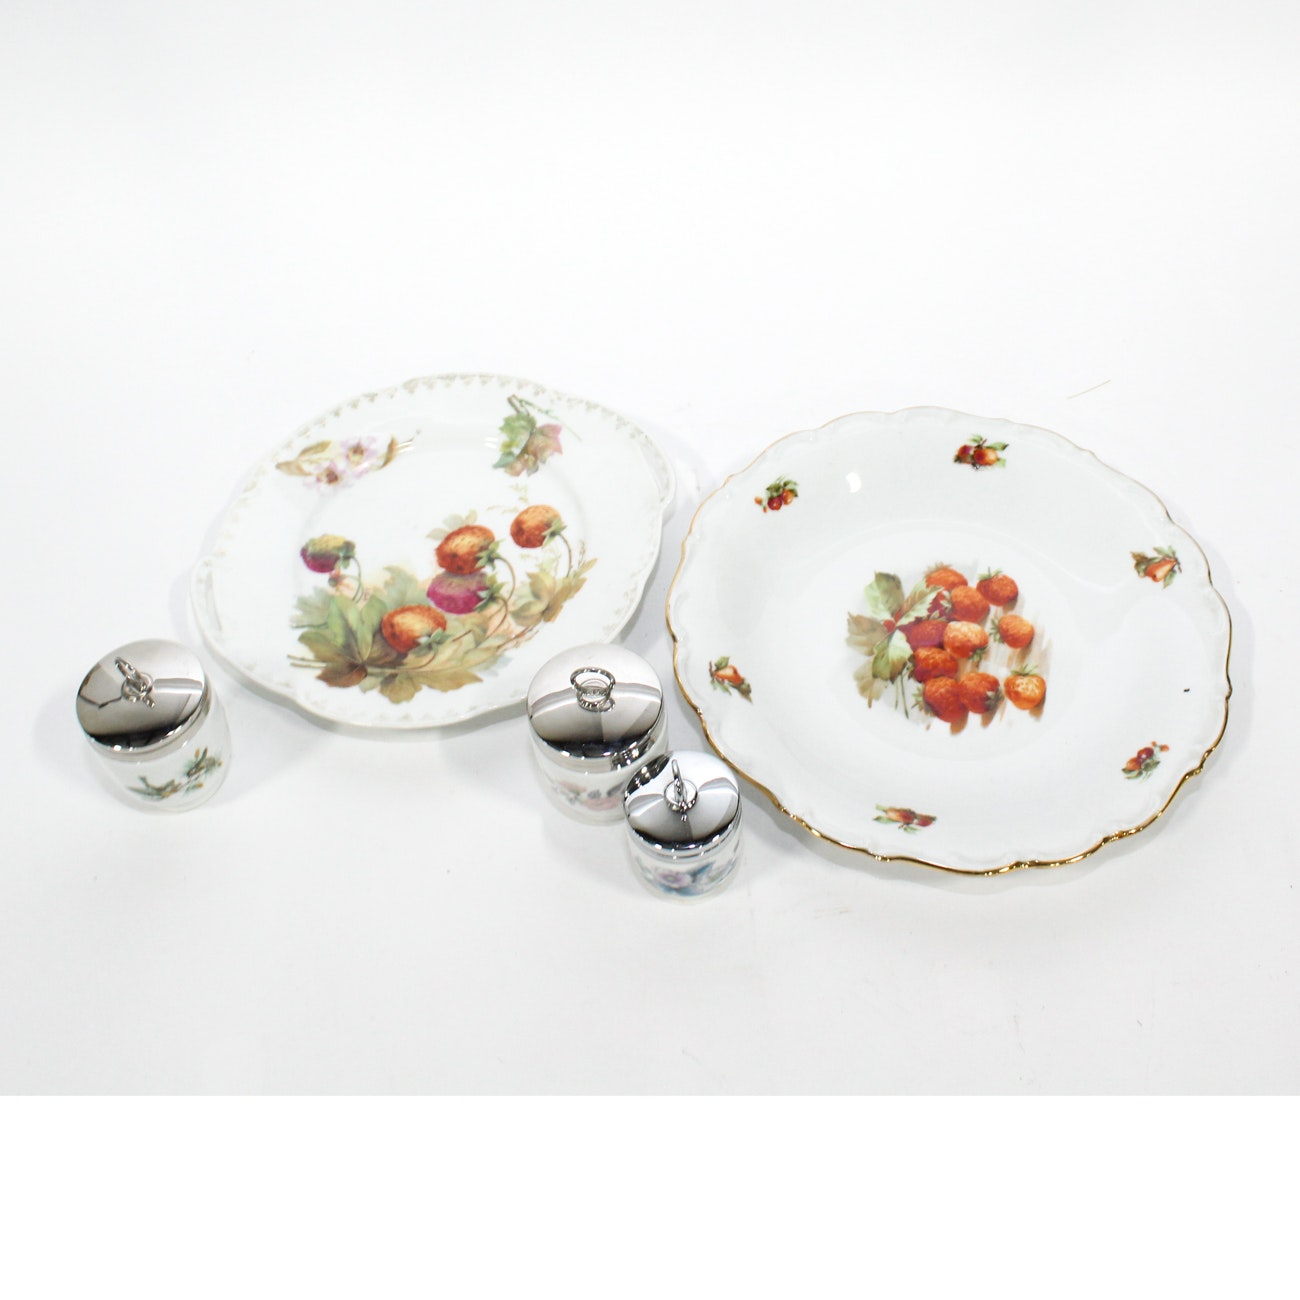 Three Royal Worcester Egg Coddlers and Two Strawberry Plates, 20th Century